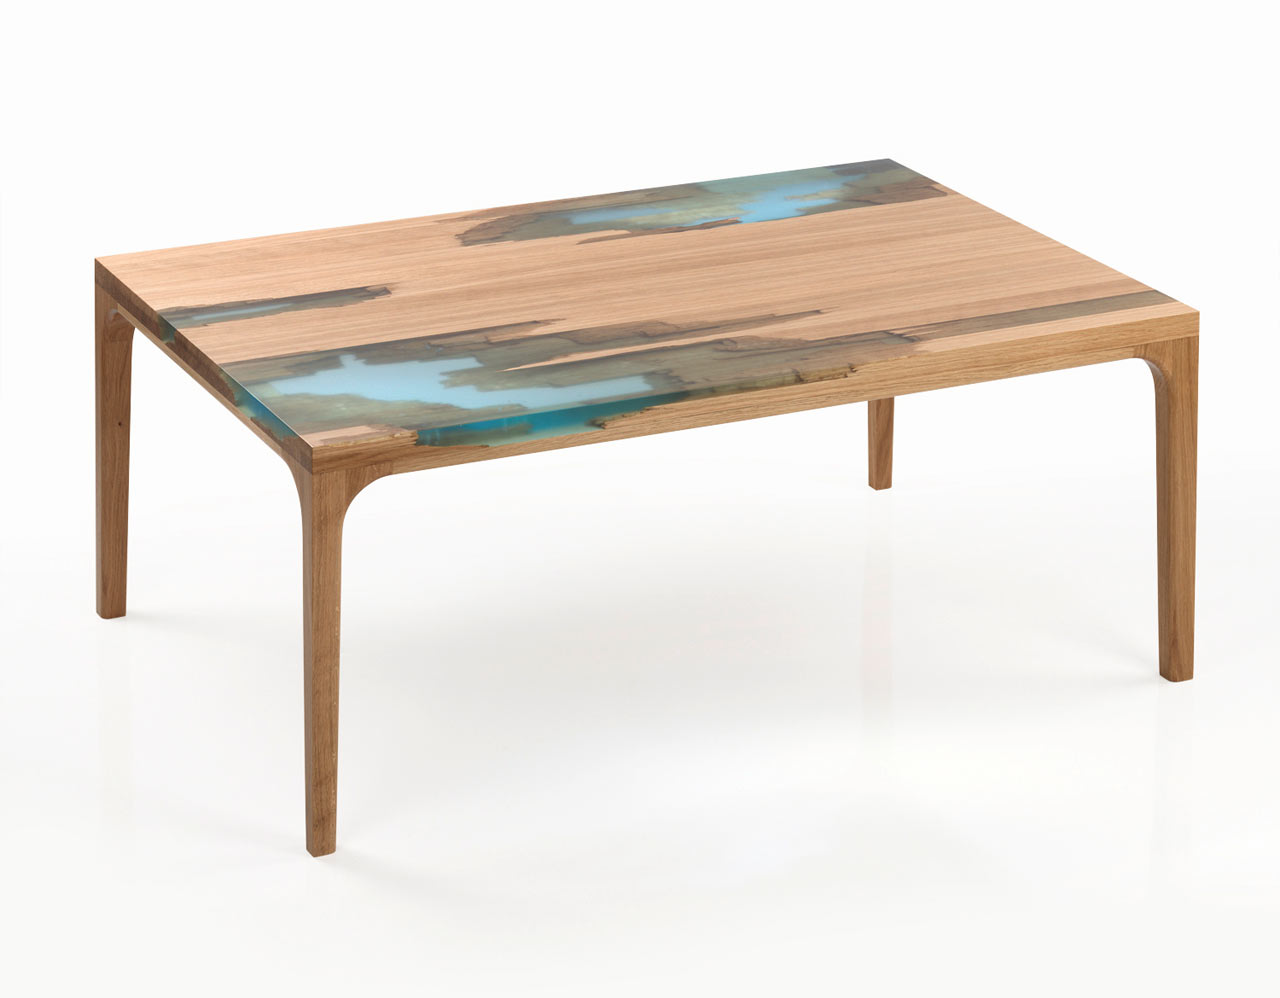 Furniture Inspired by Self-Healing Trees - Design Milk